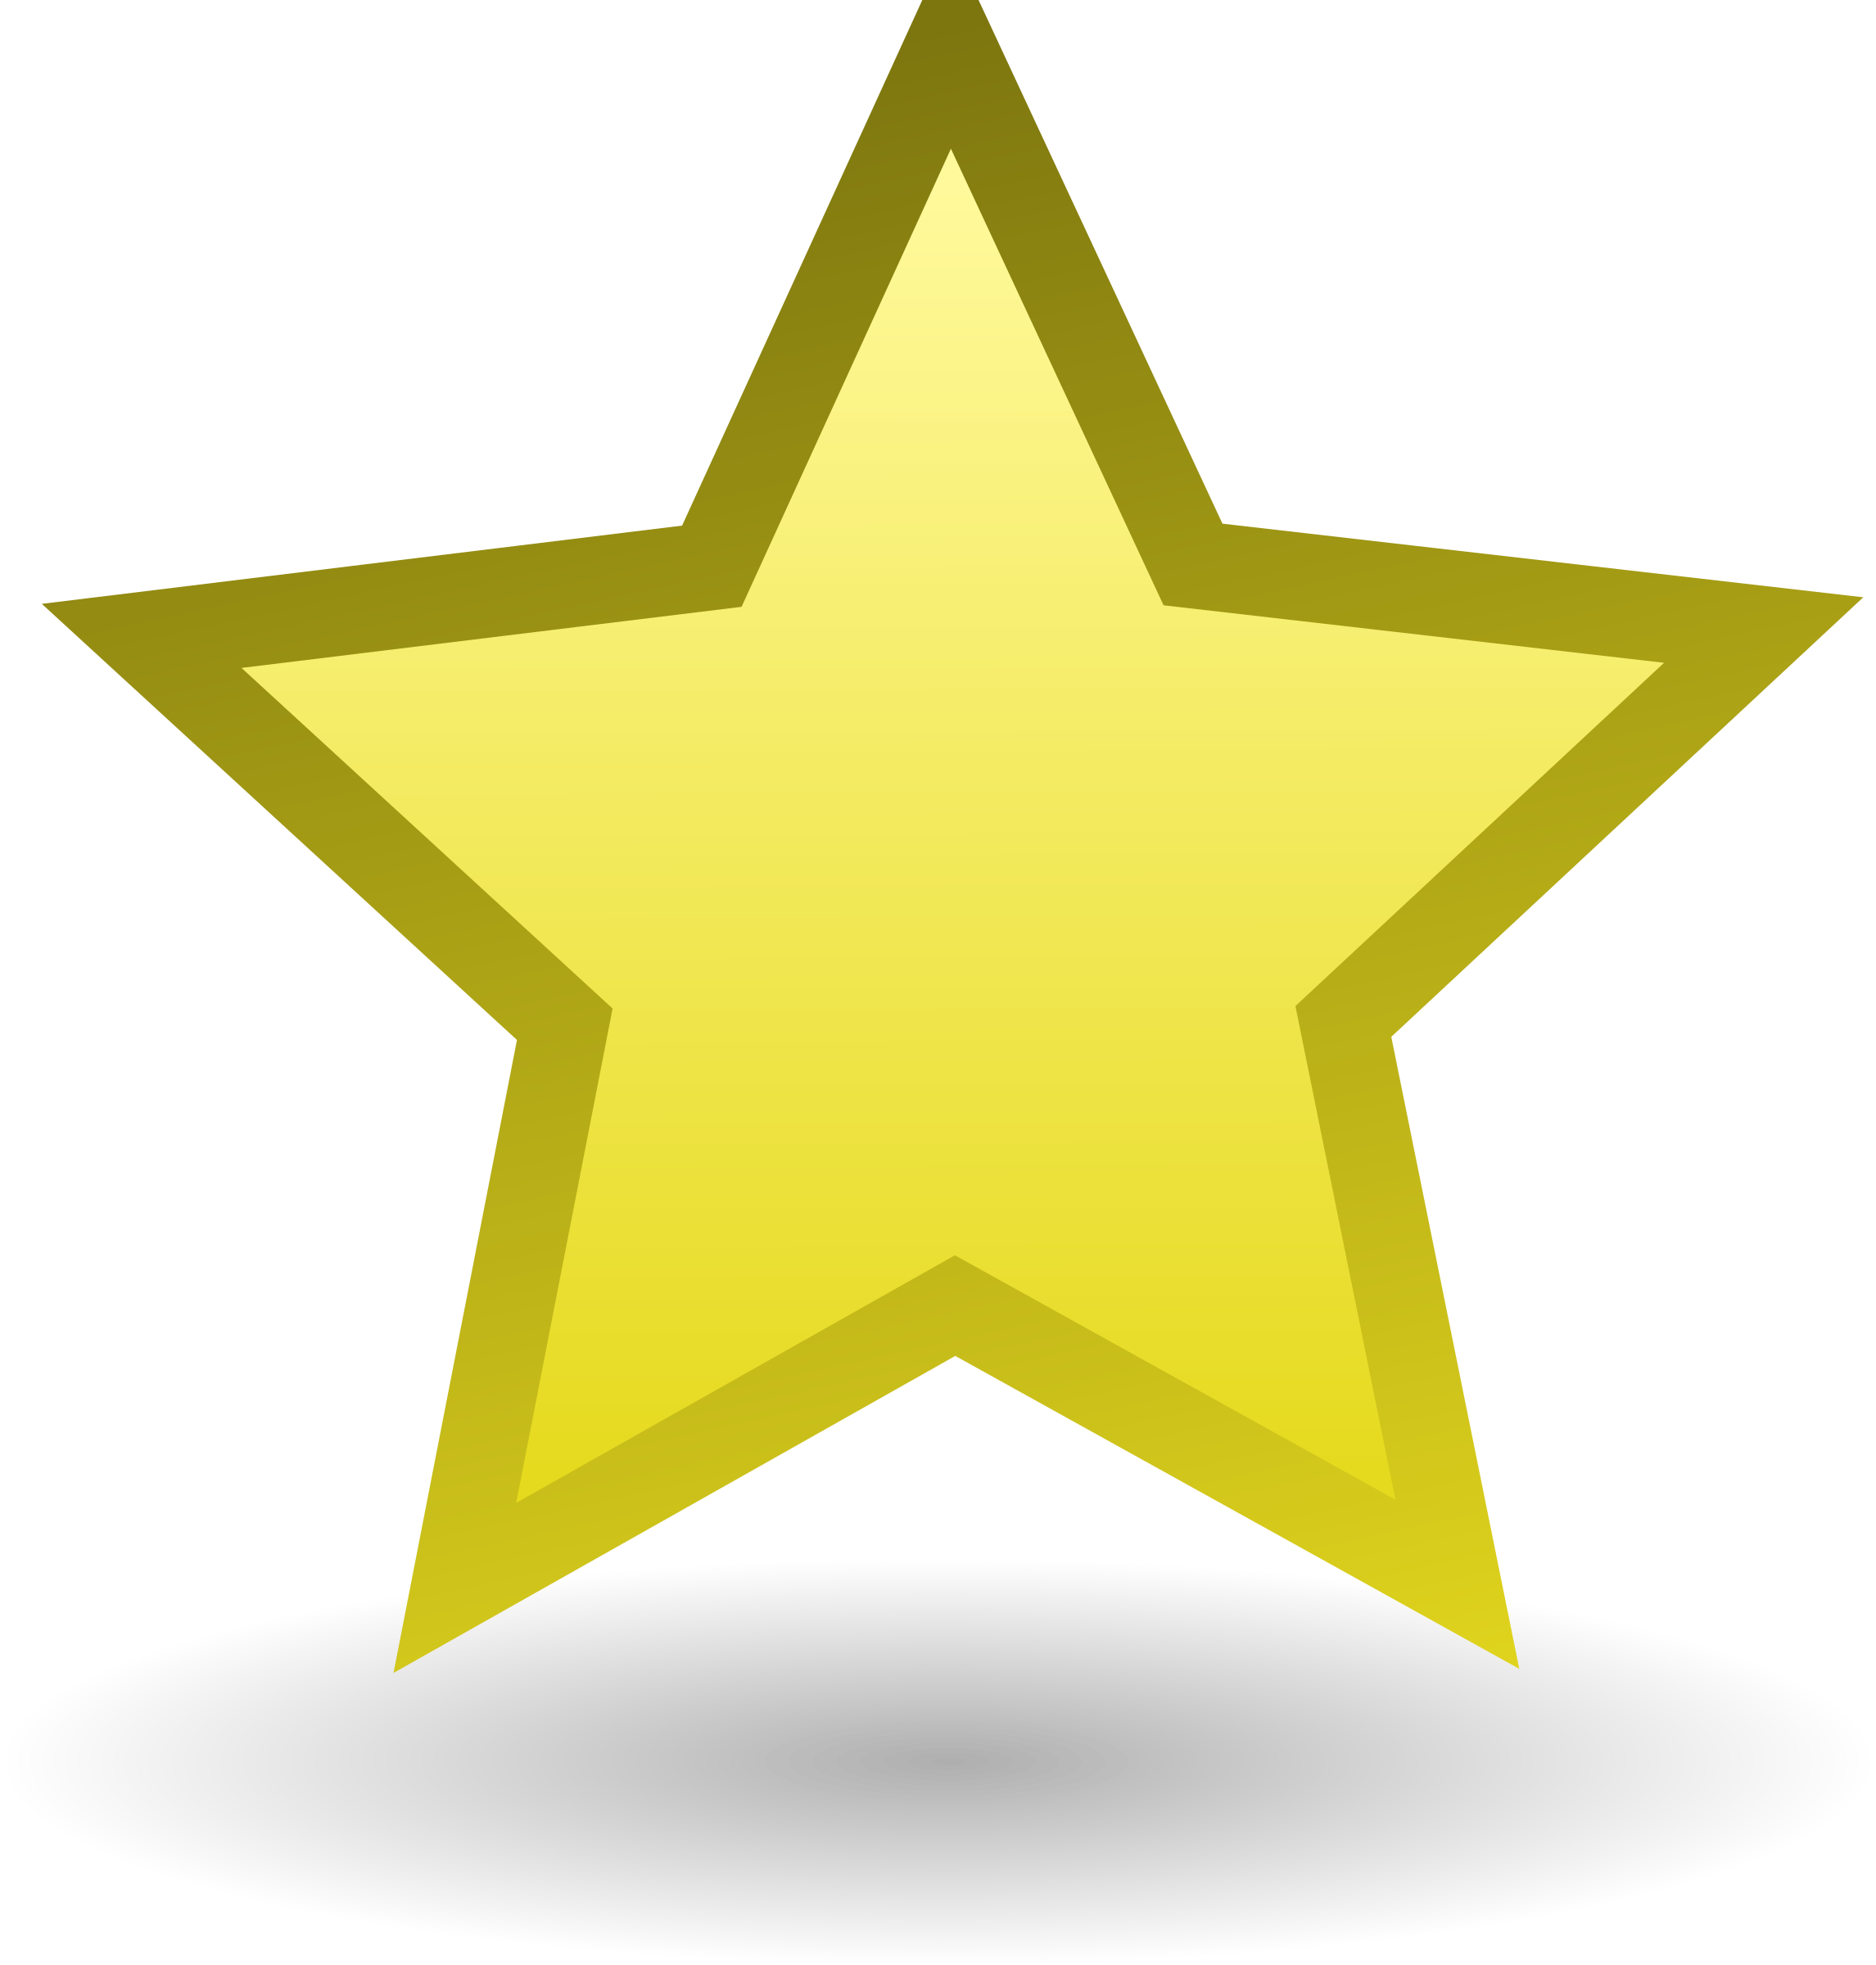 Star by Andy